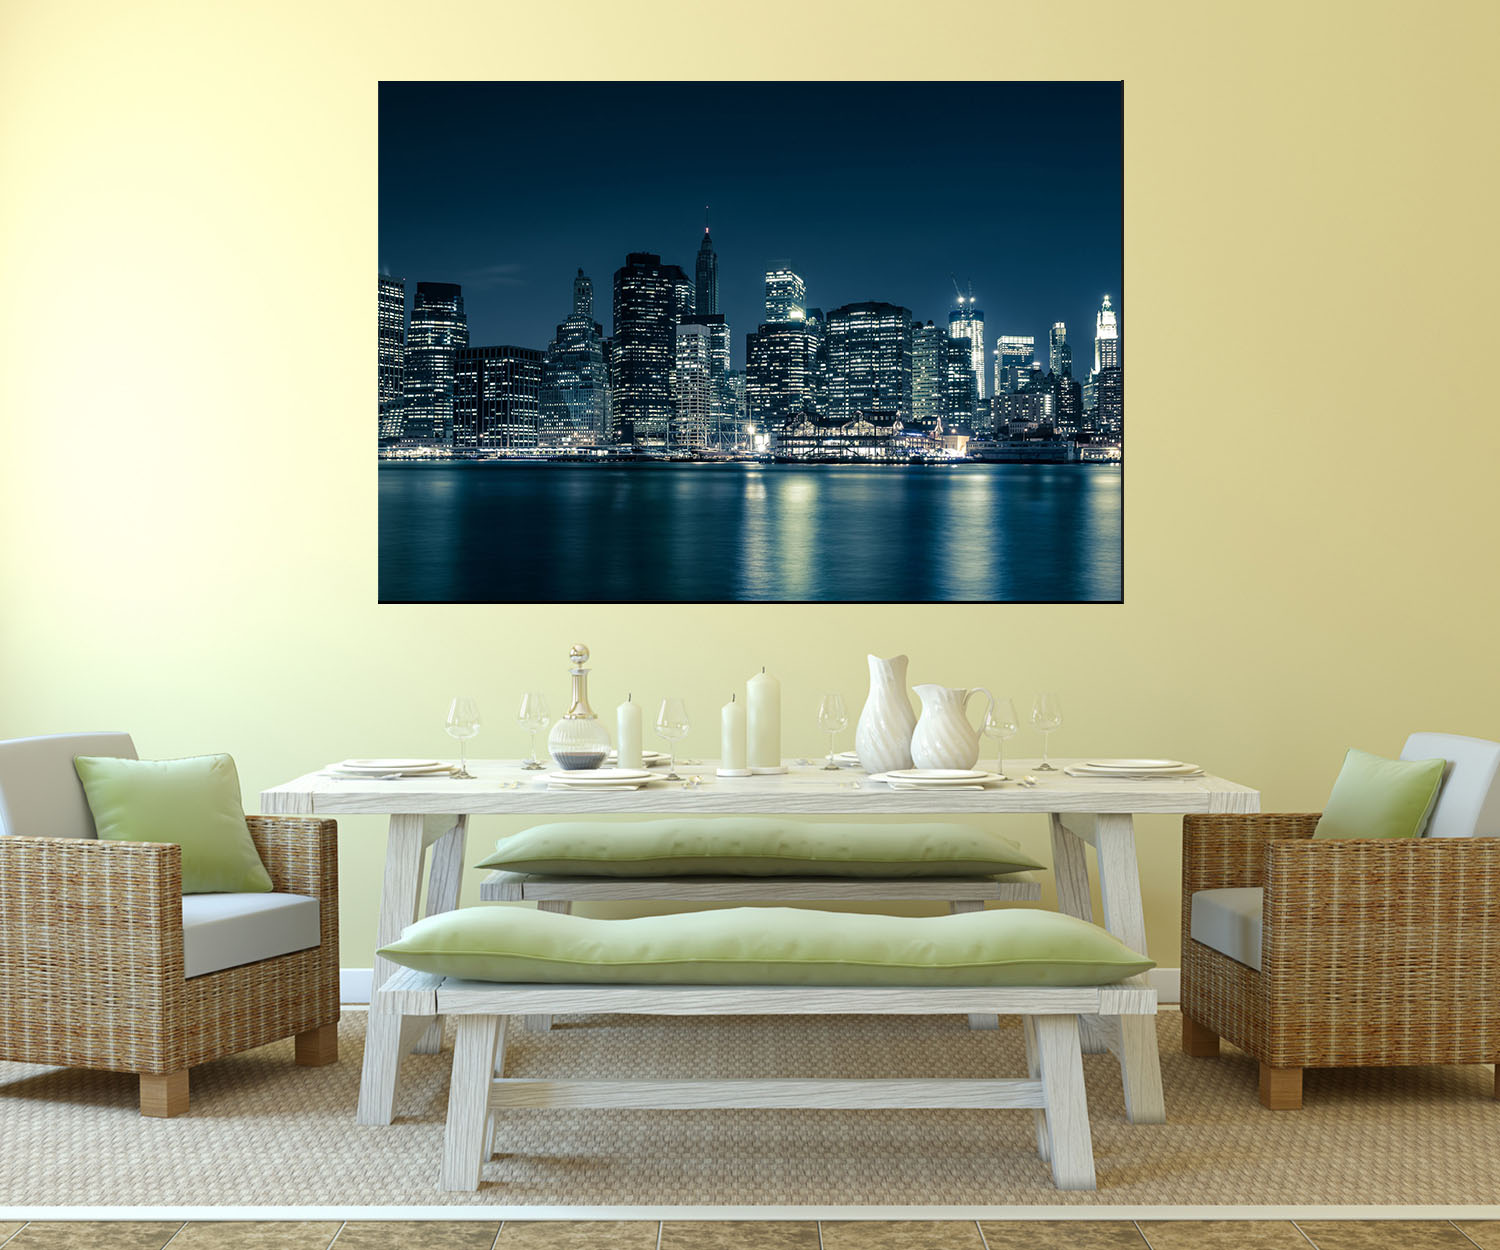 Wandbild glasbild new york city wandmotiv wb0282 ebay - Wandbild new york ...